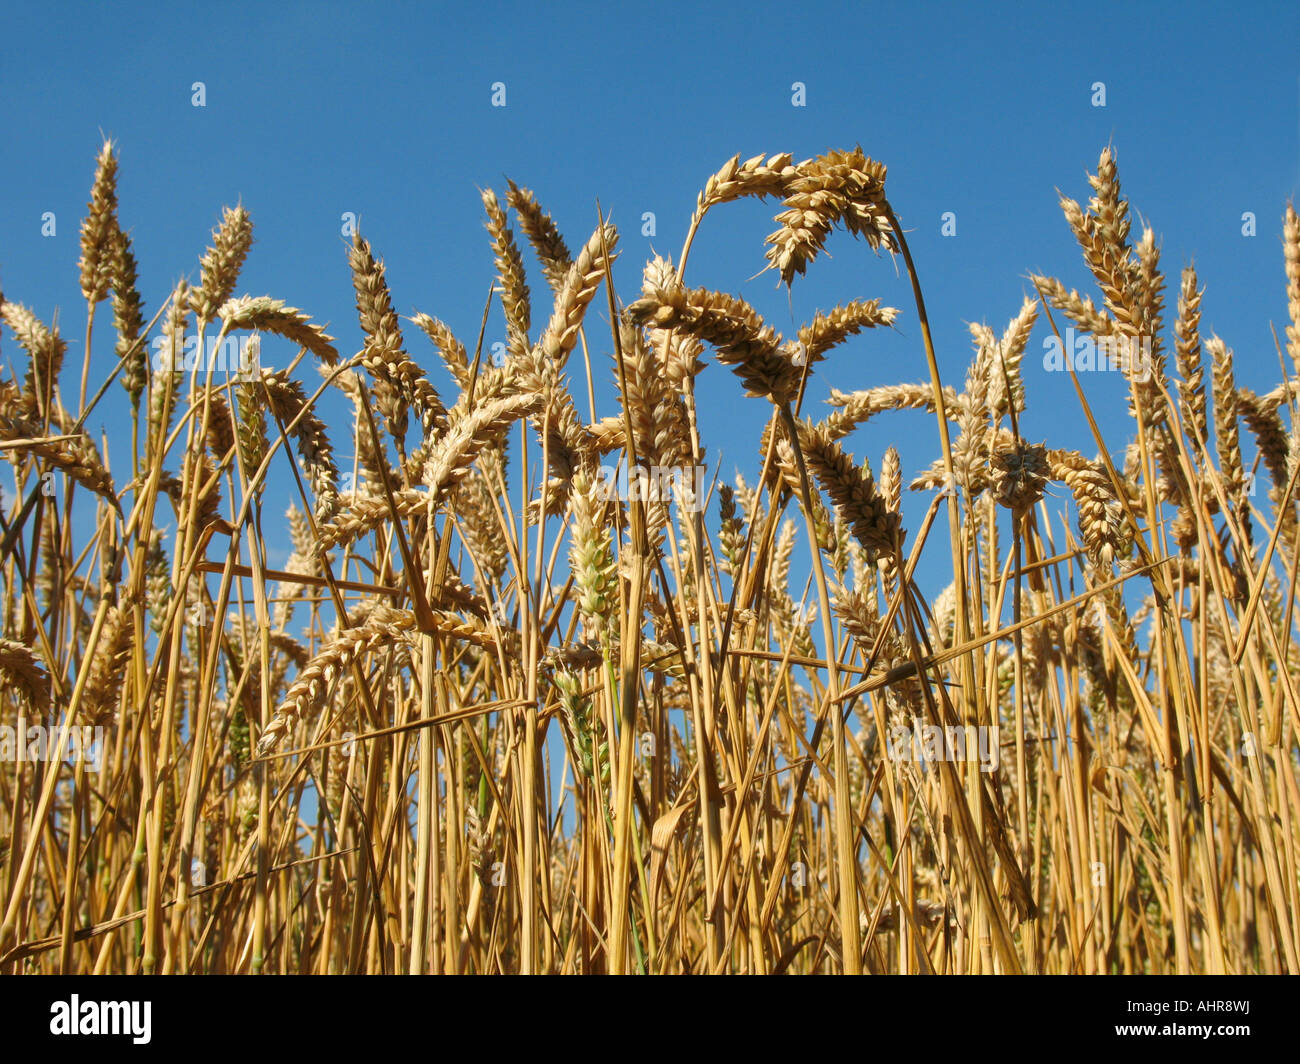 Wheat ripening in the sun - Stock Image